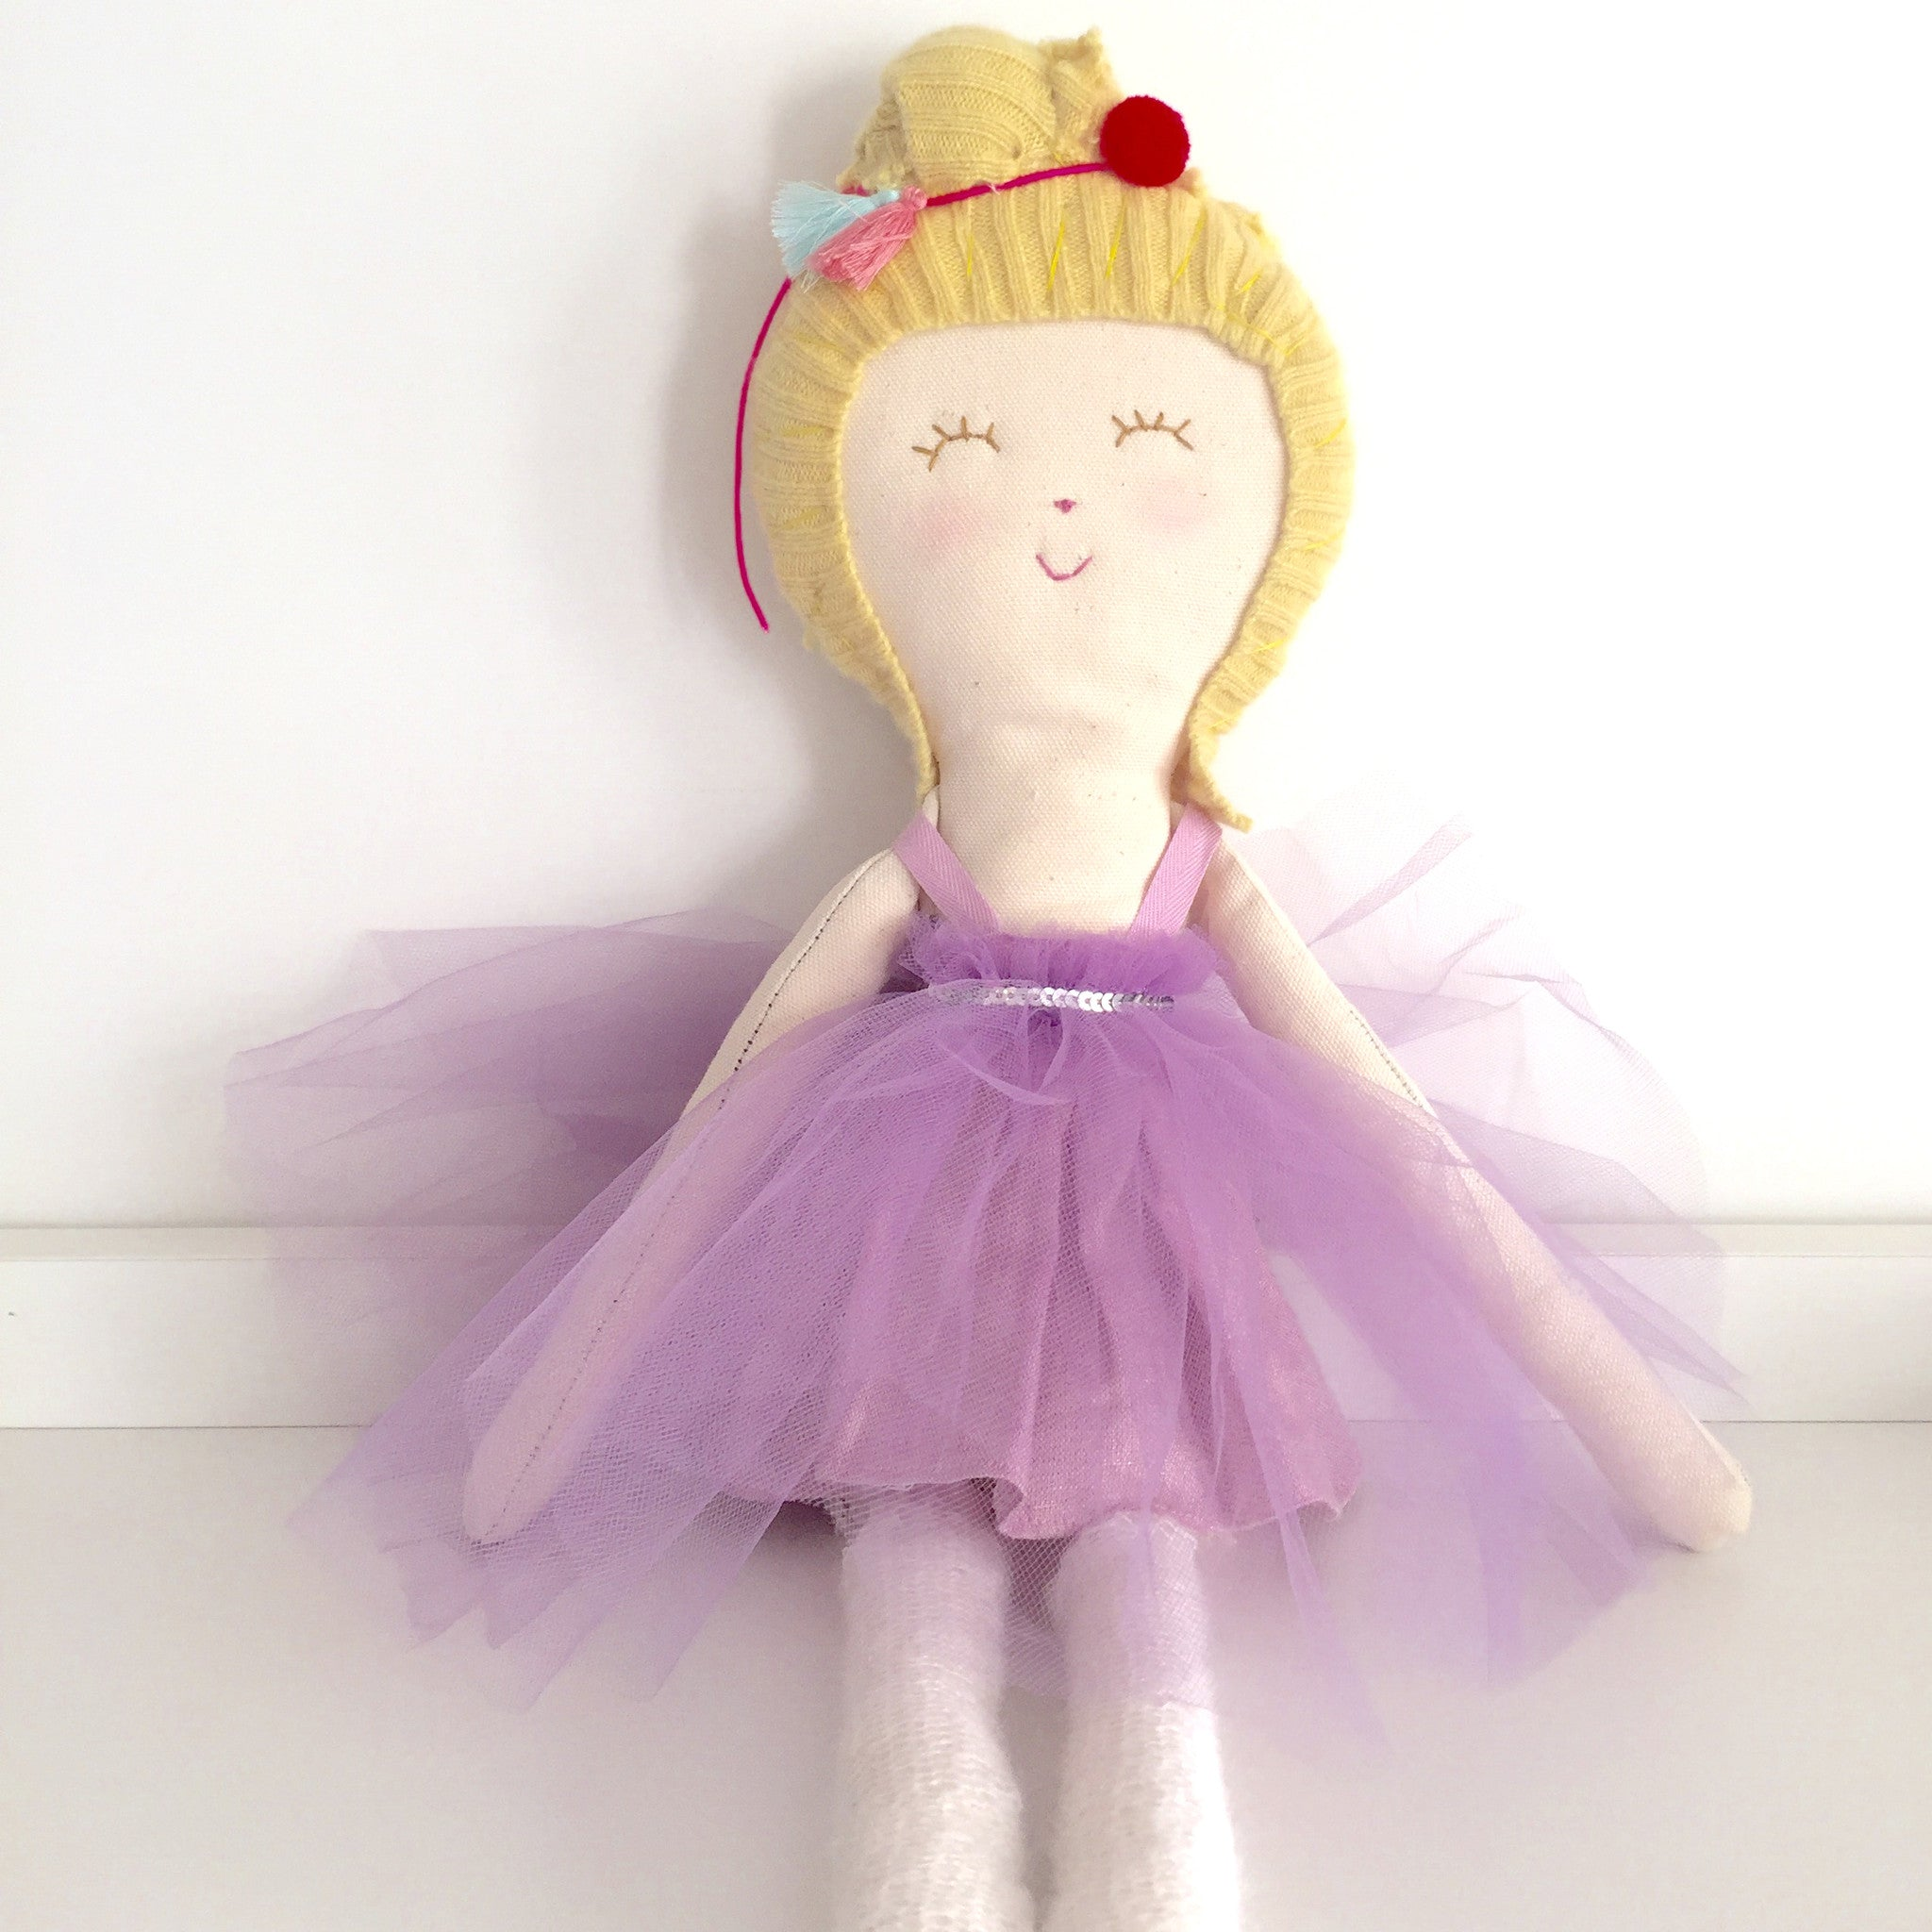 Pinkie in lavender tutu dress  - The Twin Travel Sisters collection